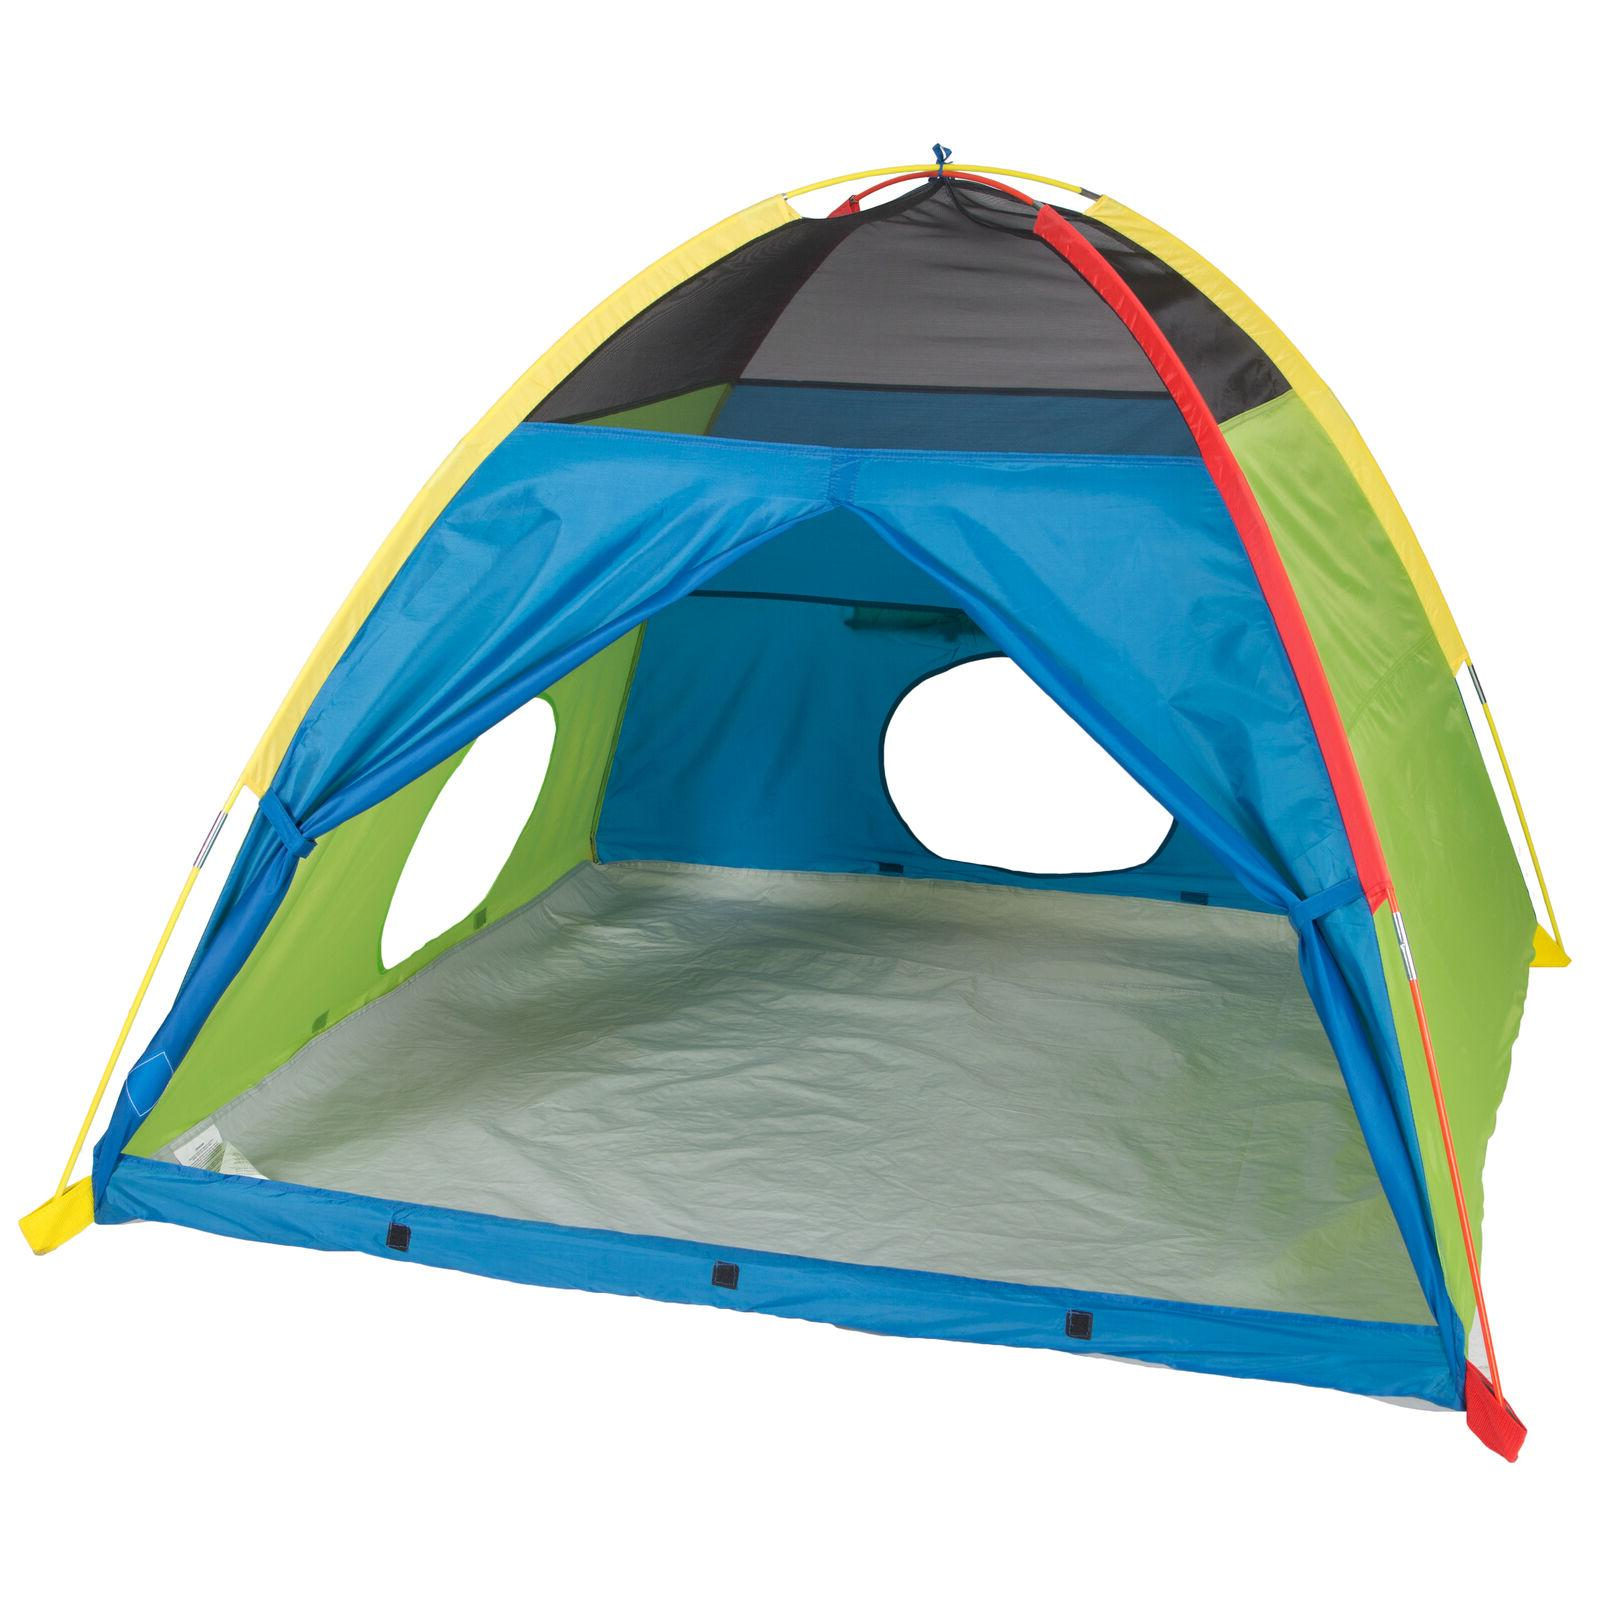 NEW Kid Play Tent Pacific Play Tents Portable Up